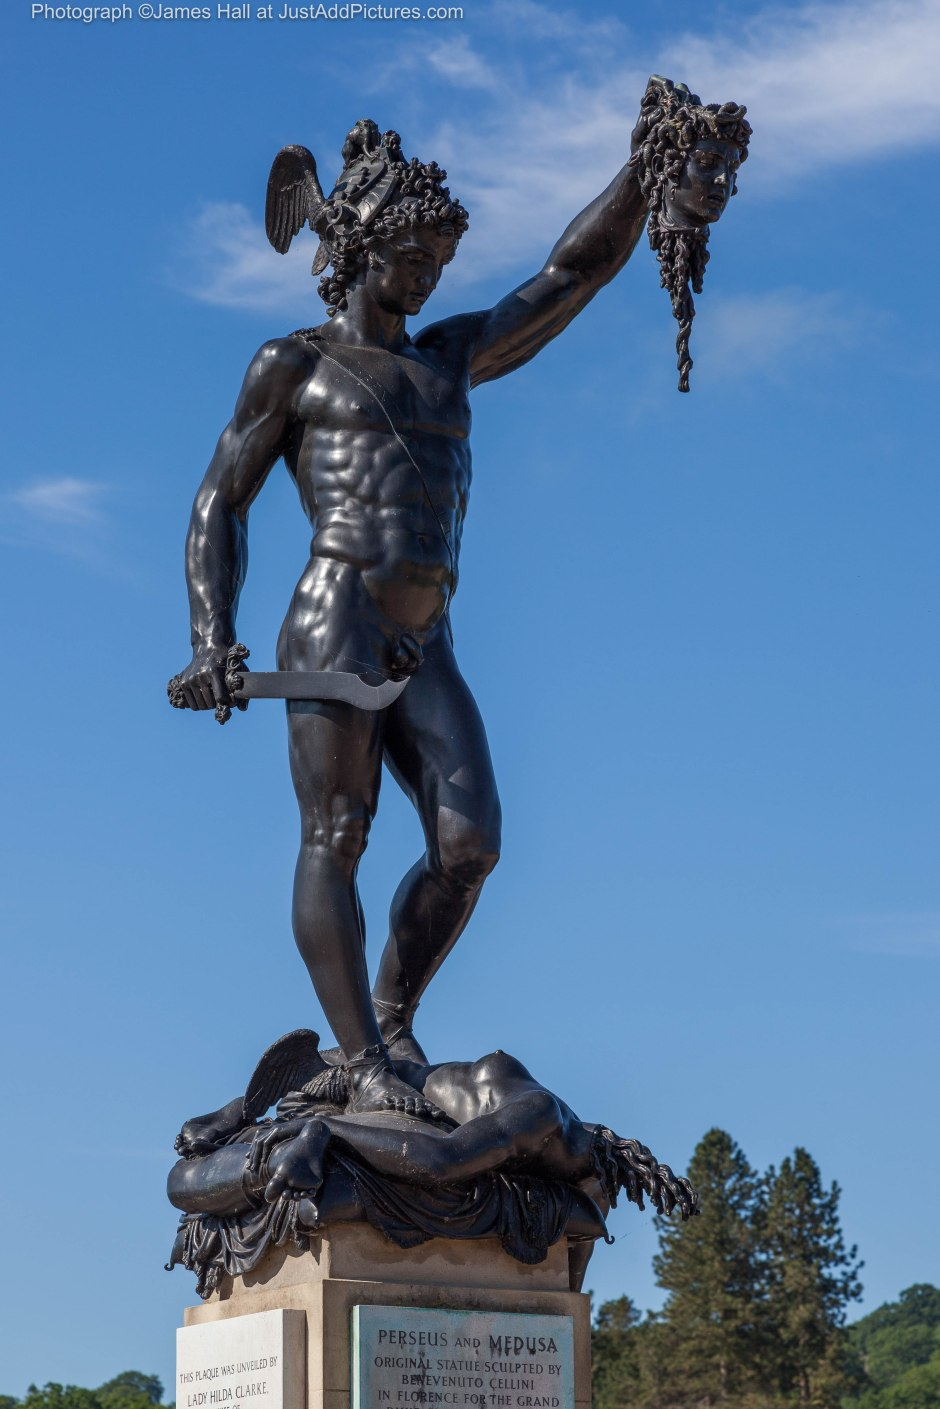 This superb bronze of Perseus and Medusa by Cellini is a highlight of Trentham Garden and was a core exhibit at the recent exhibition Bronze at the Royal Academy.